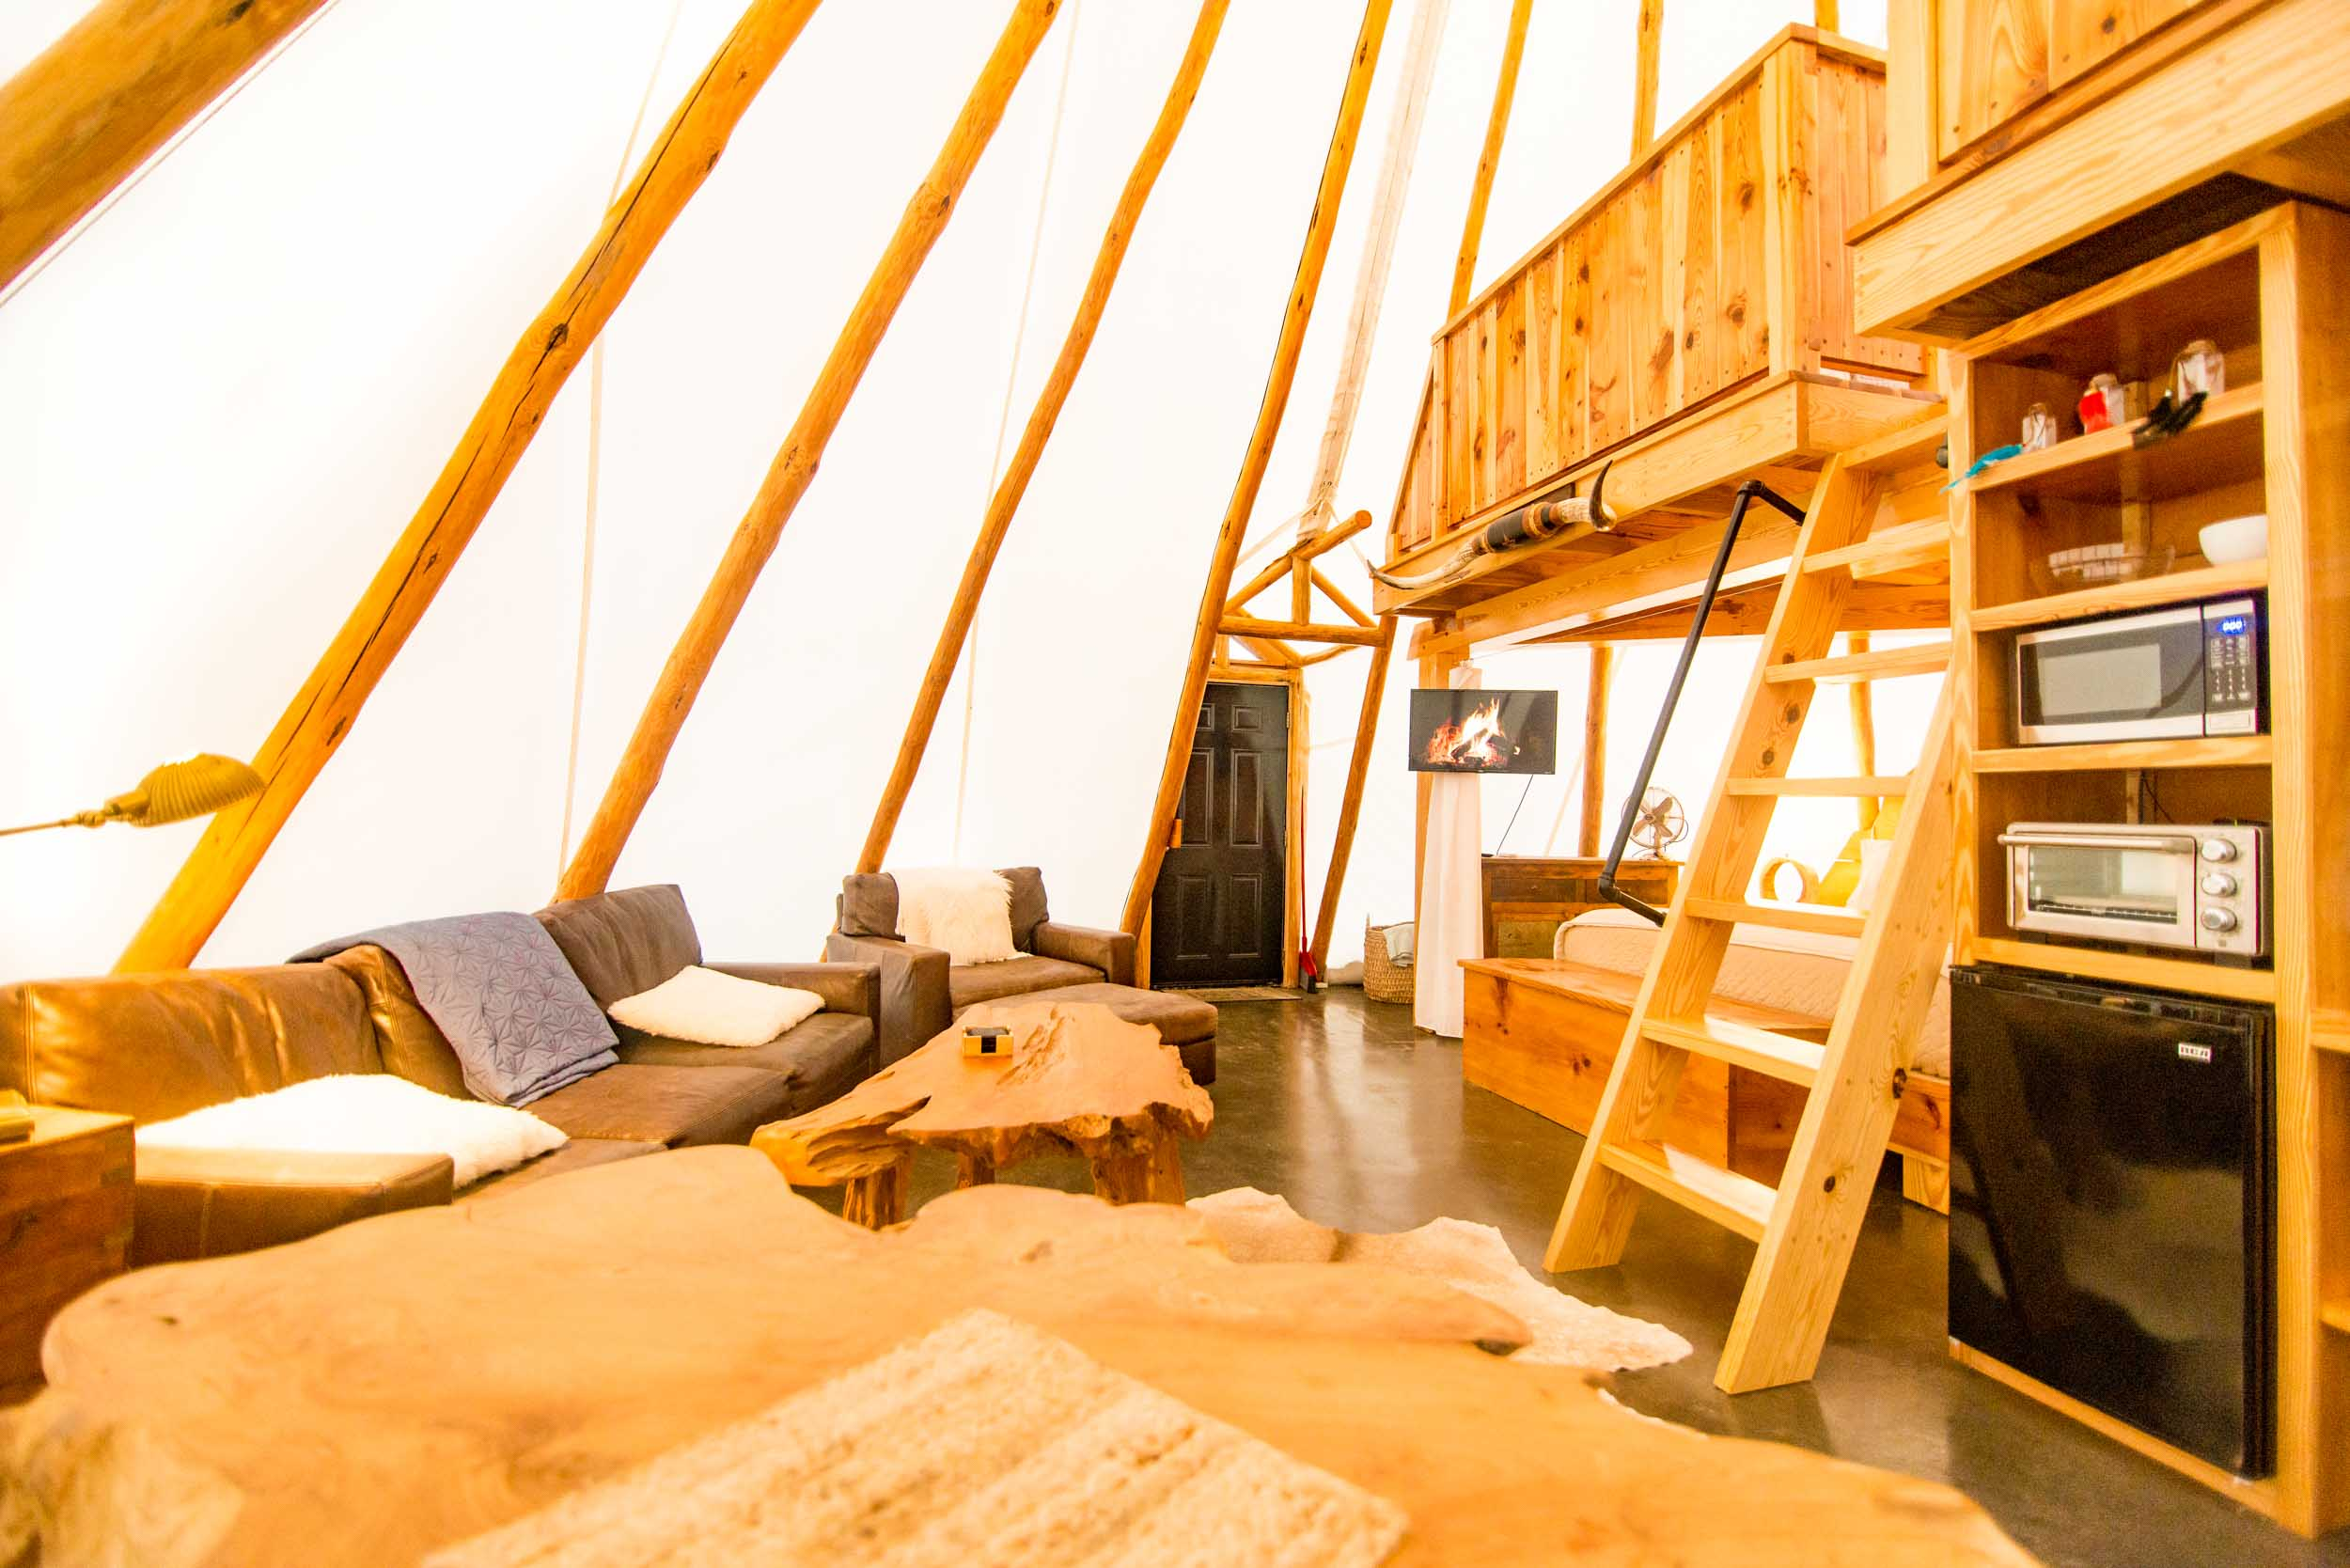 architecture+photographer+tipis+interiors+photography+airbnb+photo-3.jpg